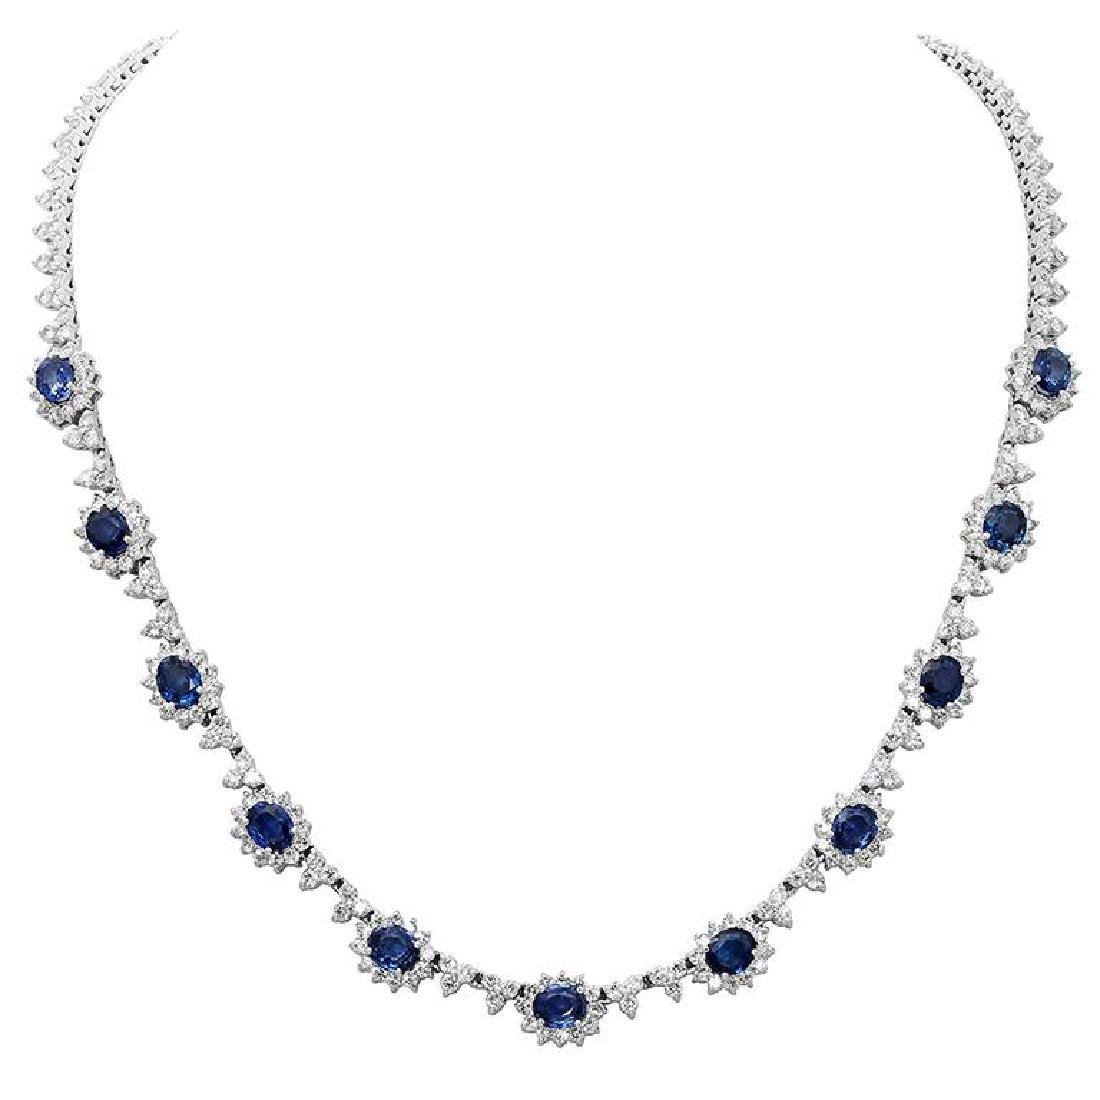 14k White Gold 7.94ct Sapphire 8.82ct Diamond Necklace